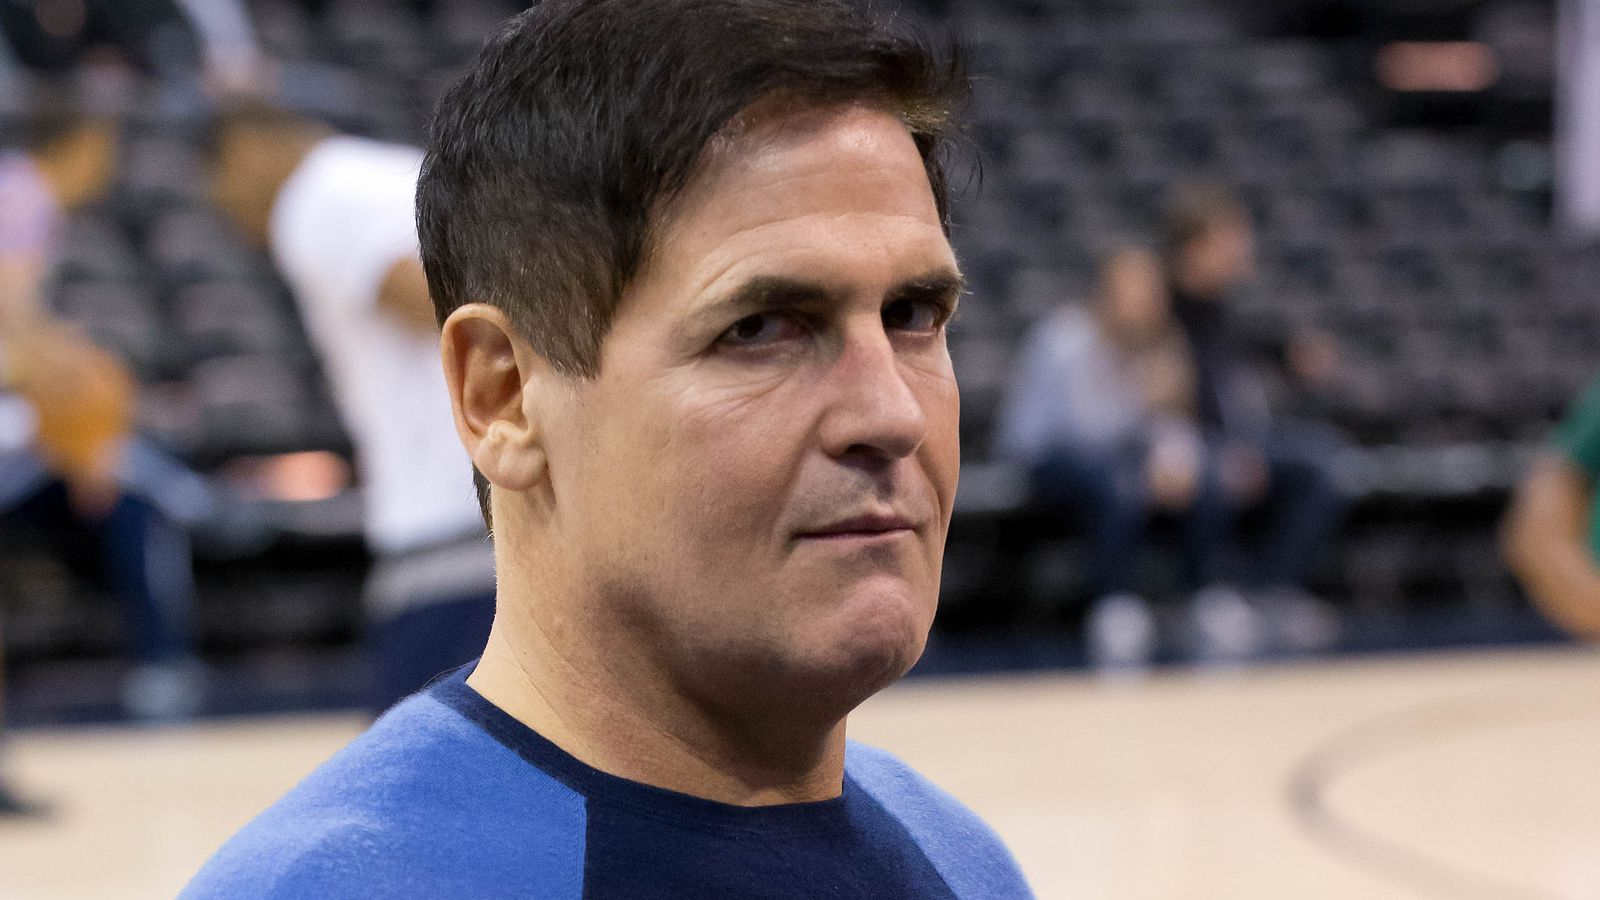 NBA referees union says Mark Cuban has unfair influence over league officials